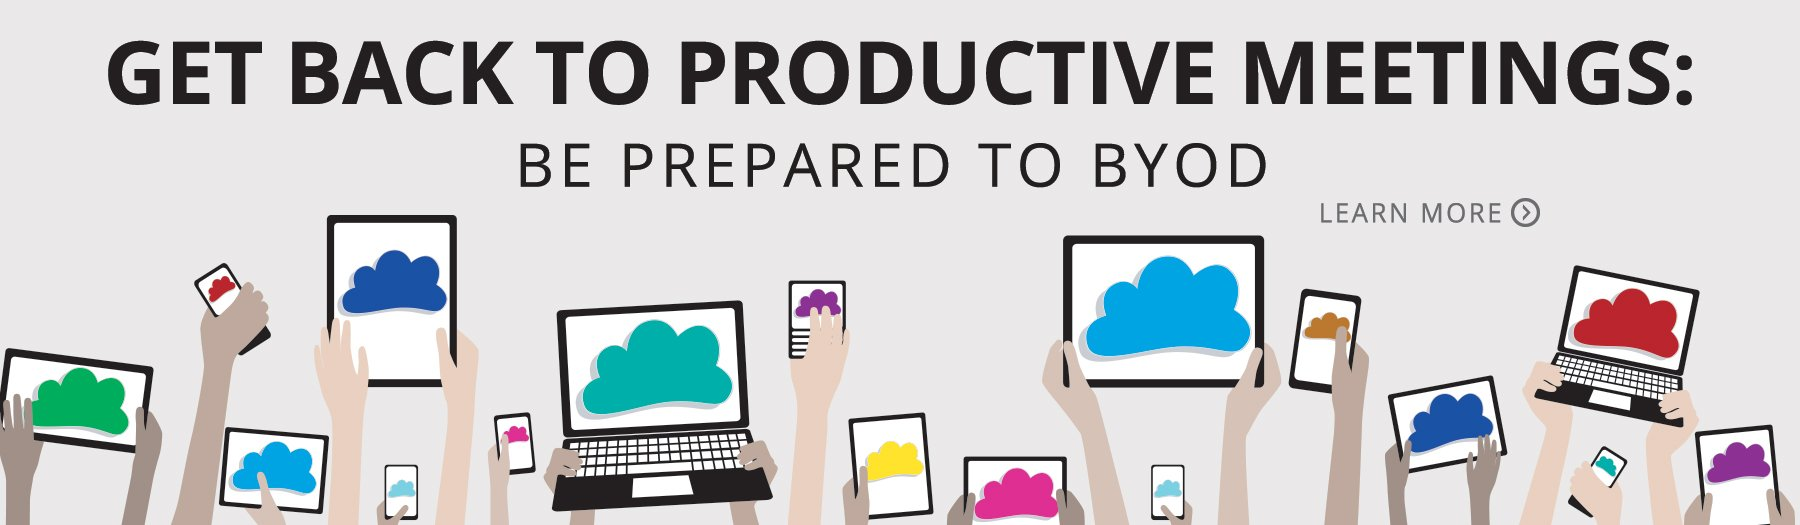 BYOD Demands in Today's Meeting Rooms